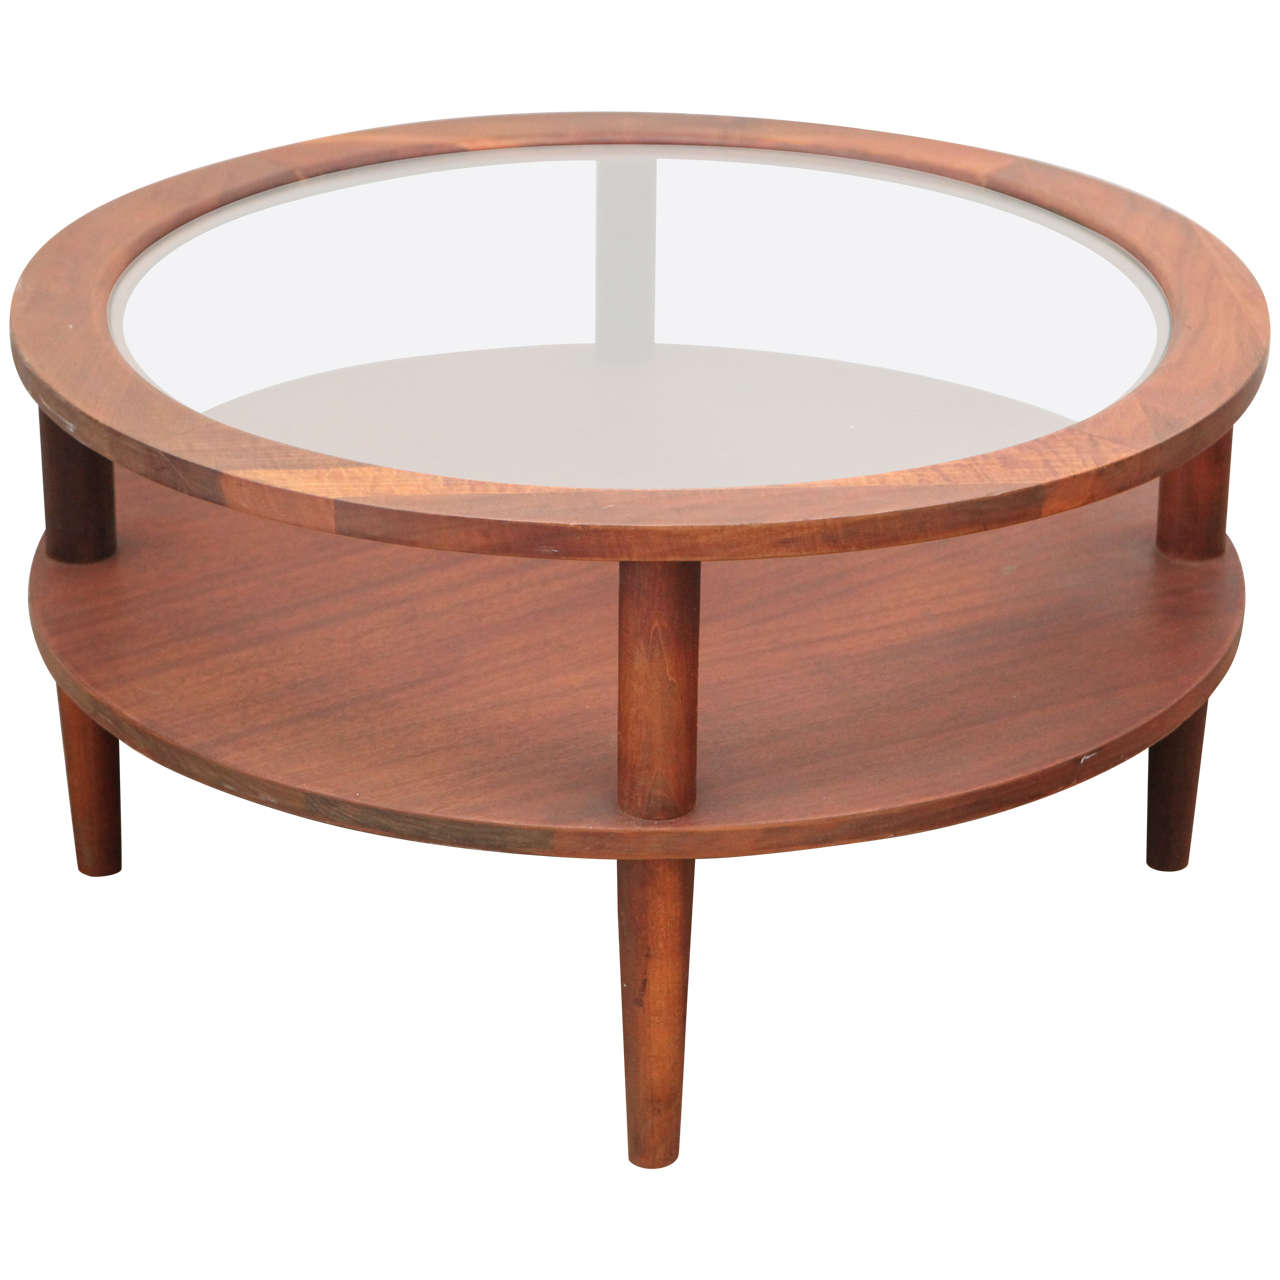 Vintage Round Glass Topped Coffee Table At 1stdibs